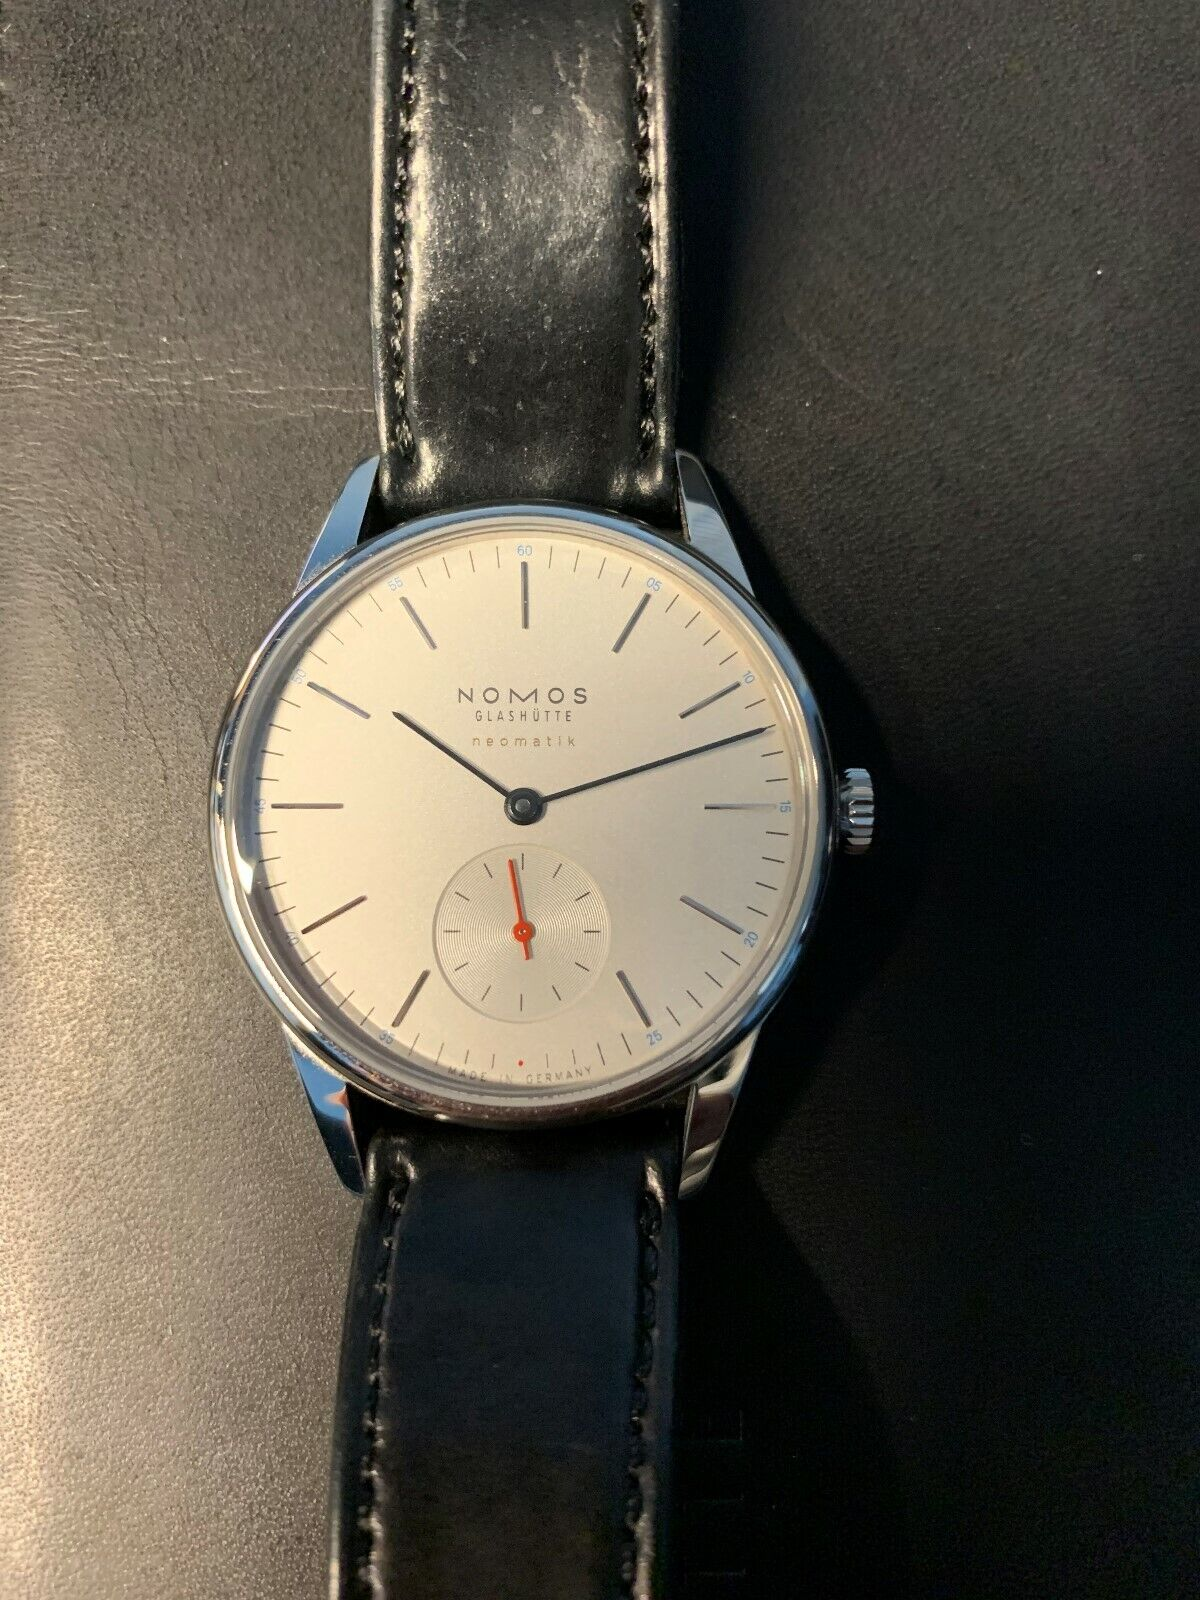 NOMOS GLASHUTTE ORION NEOMATIK 392 WATCH FULL KIT AUTOMATIC EXTRA STRAP - watch picture 1